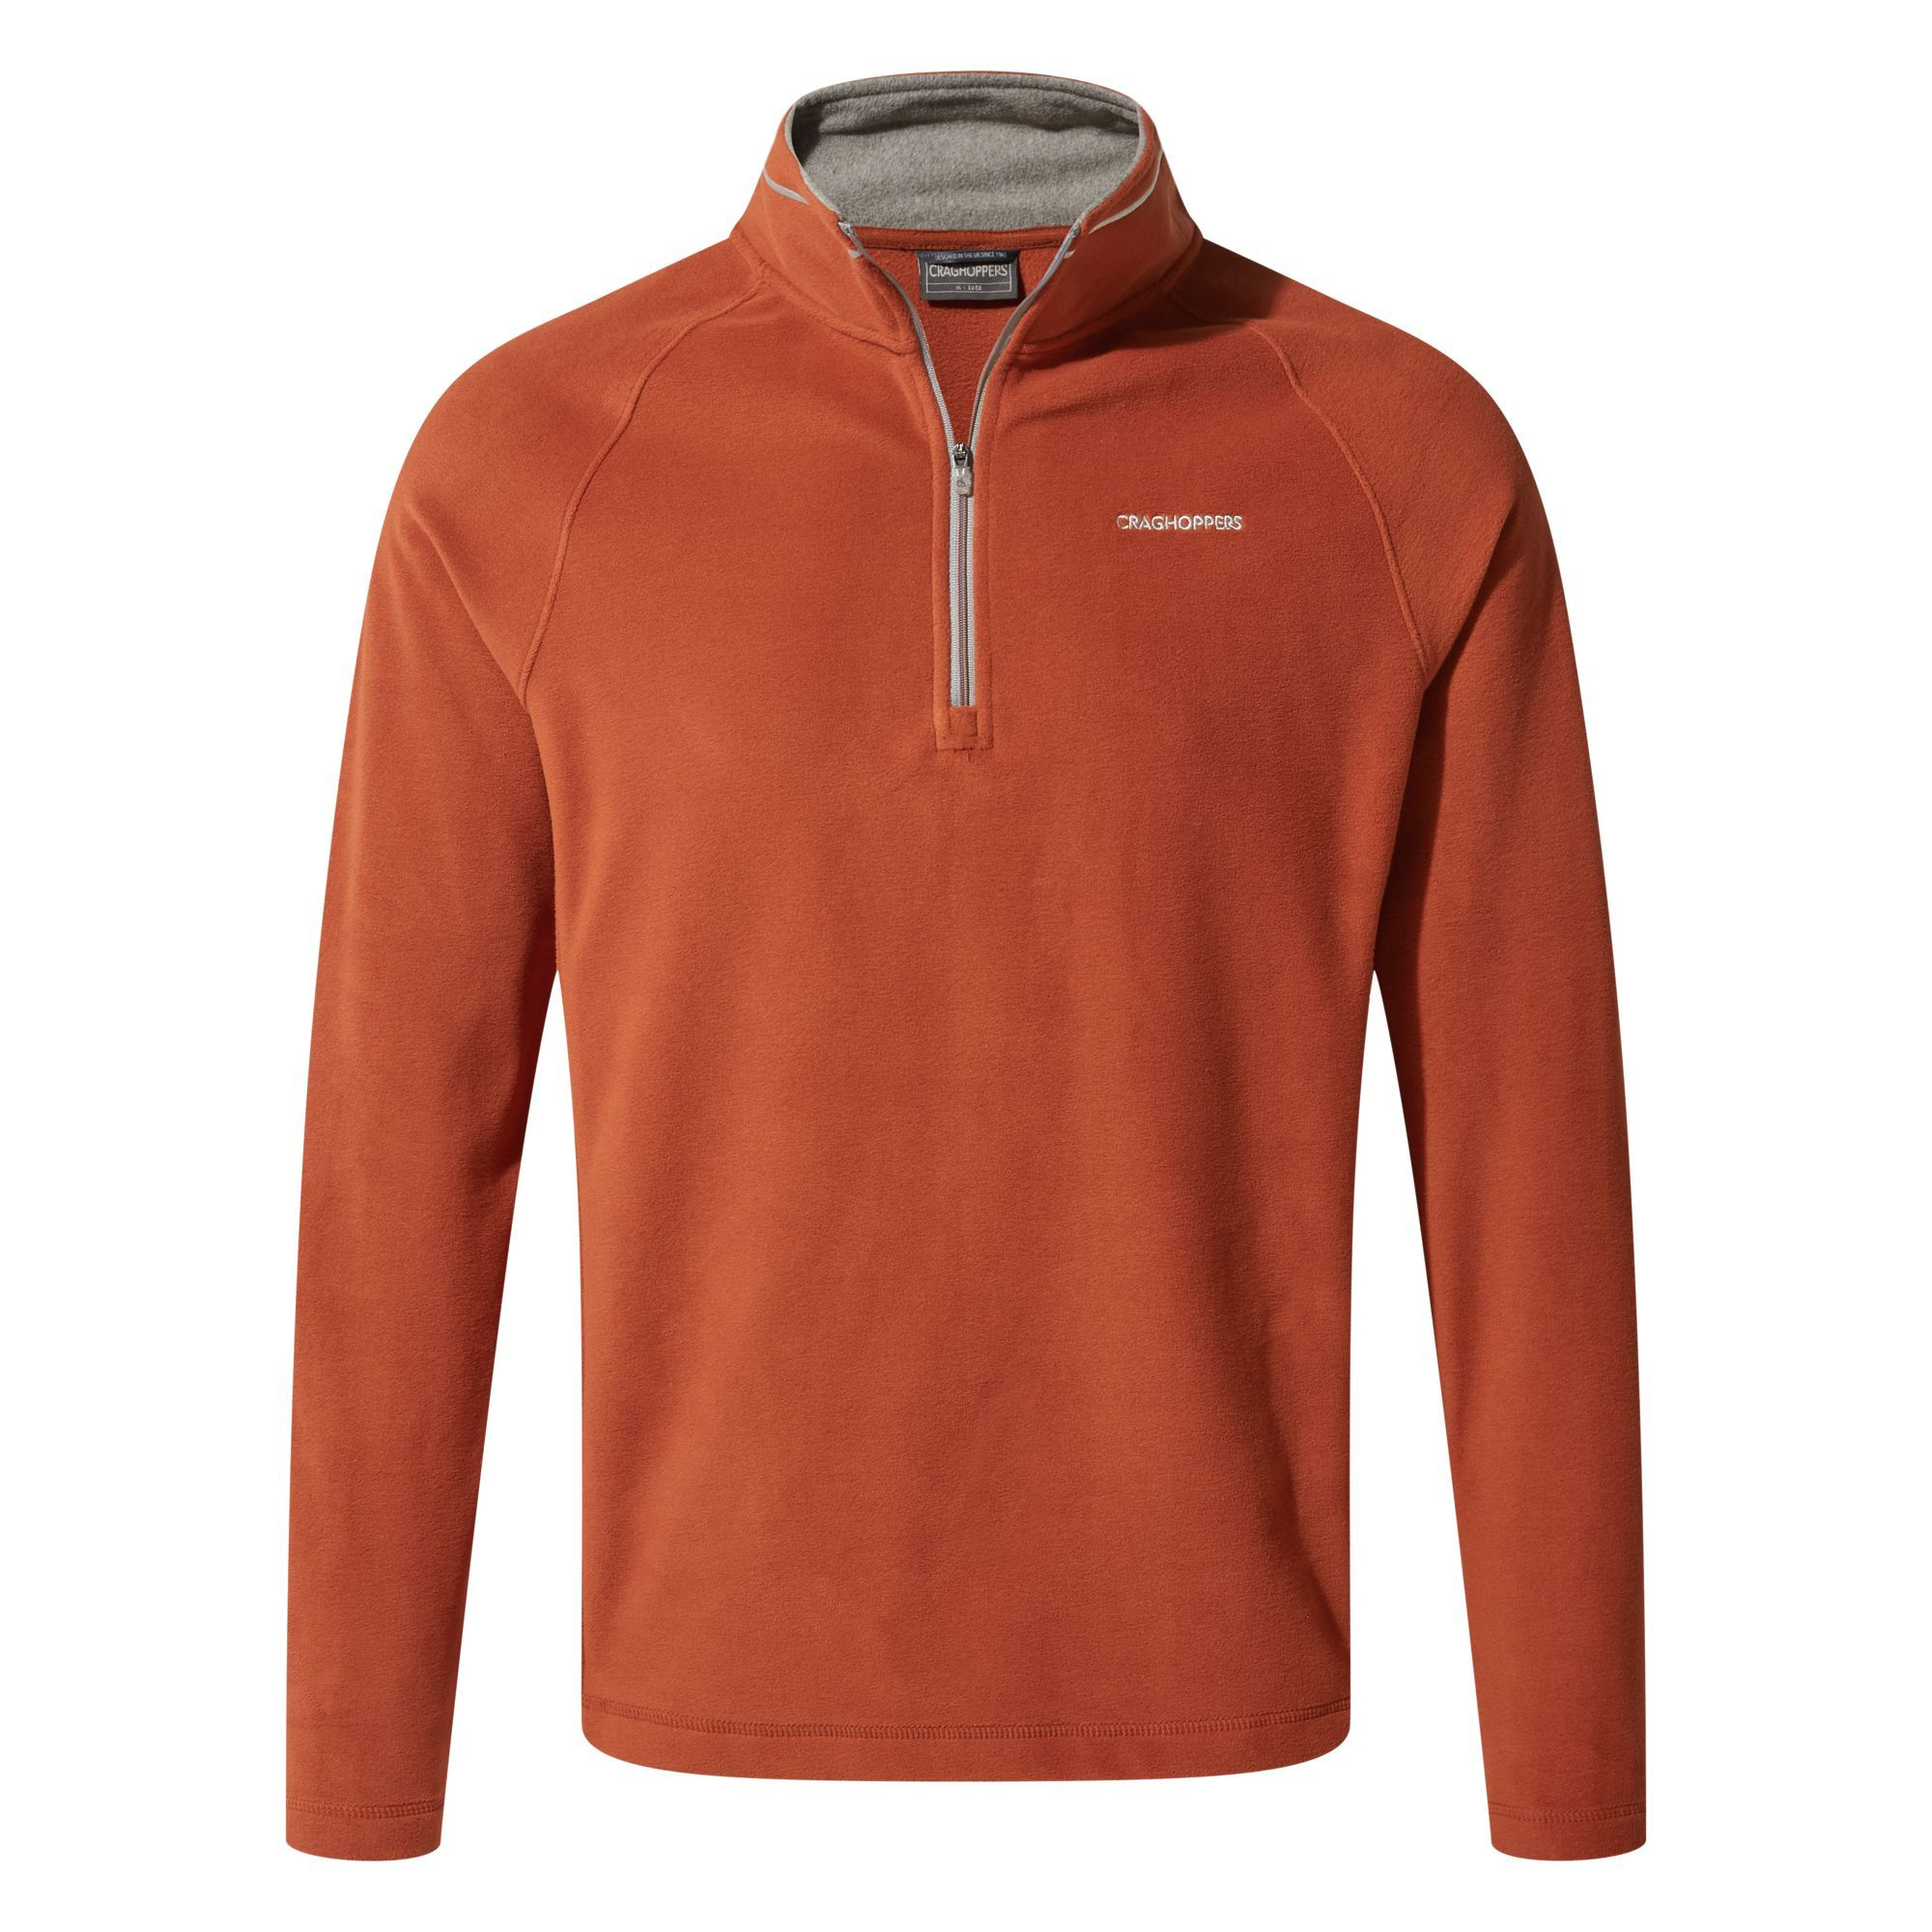 Craghoppers Corey Half Zip Fleece for Men in Burnt Orange